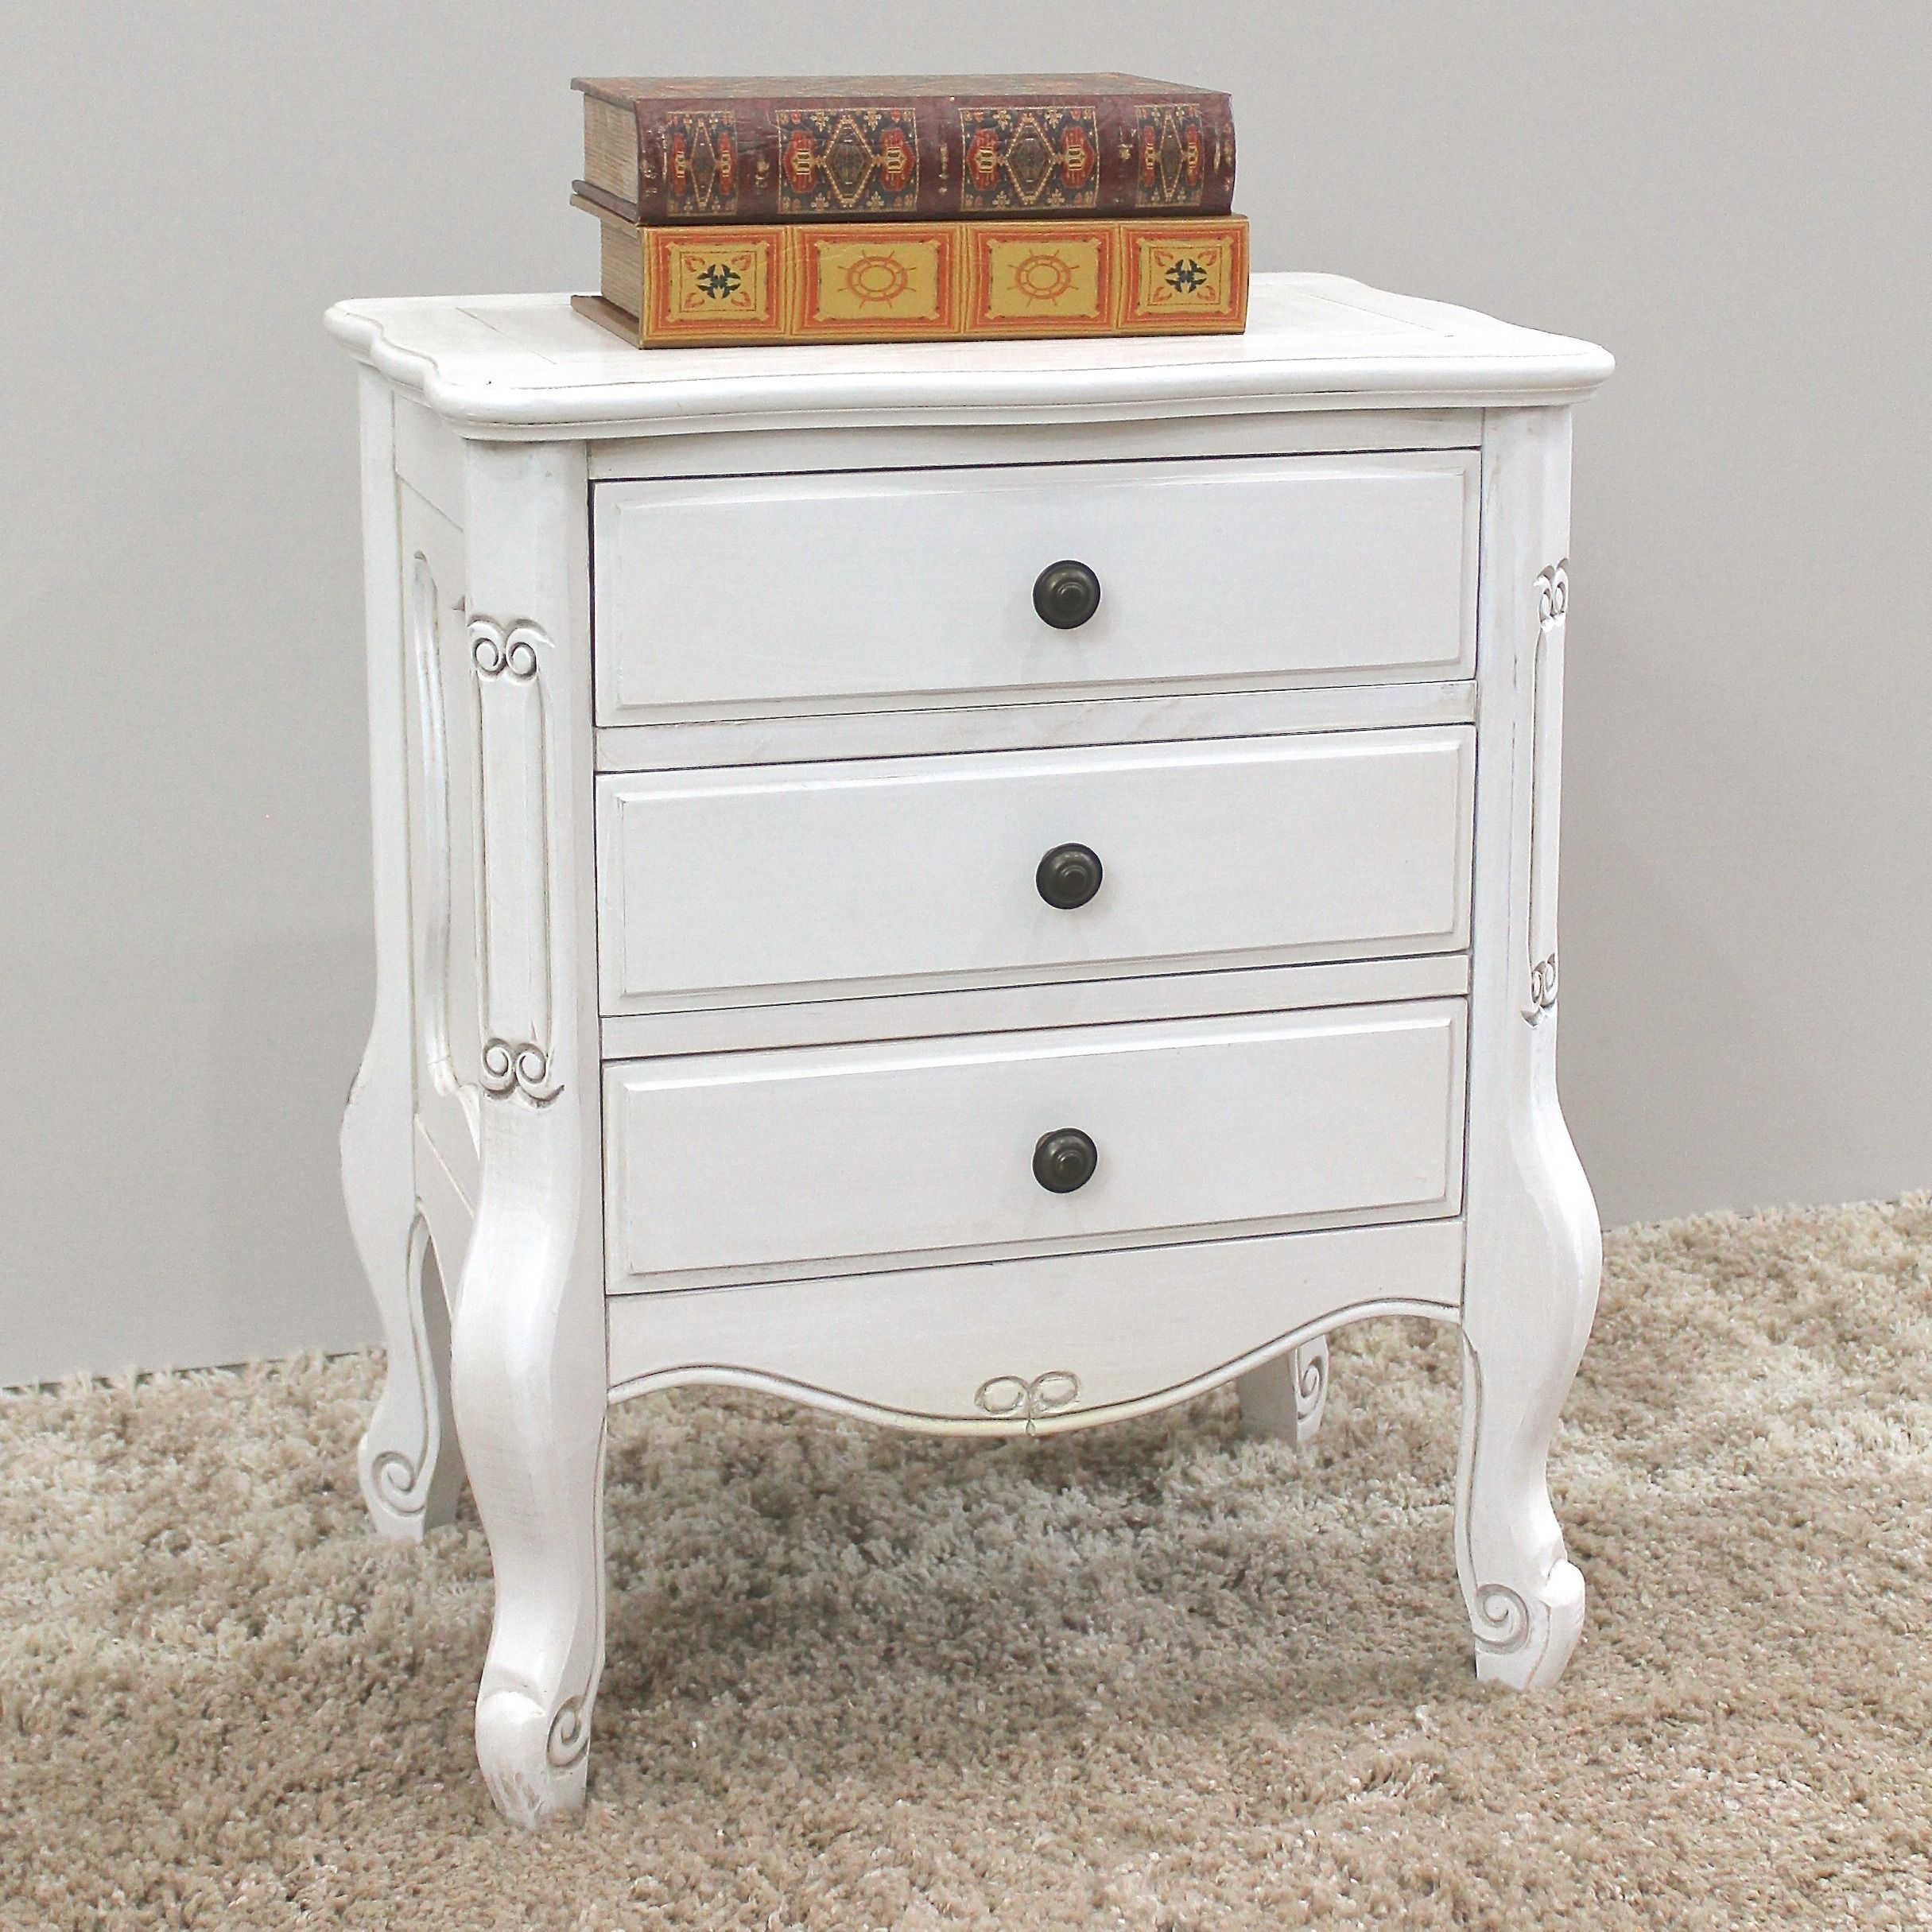 Add A Touch Of Class To Your Bedroom With This Beautifully Styled Bedside  Table. Designed